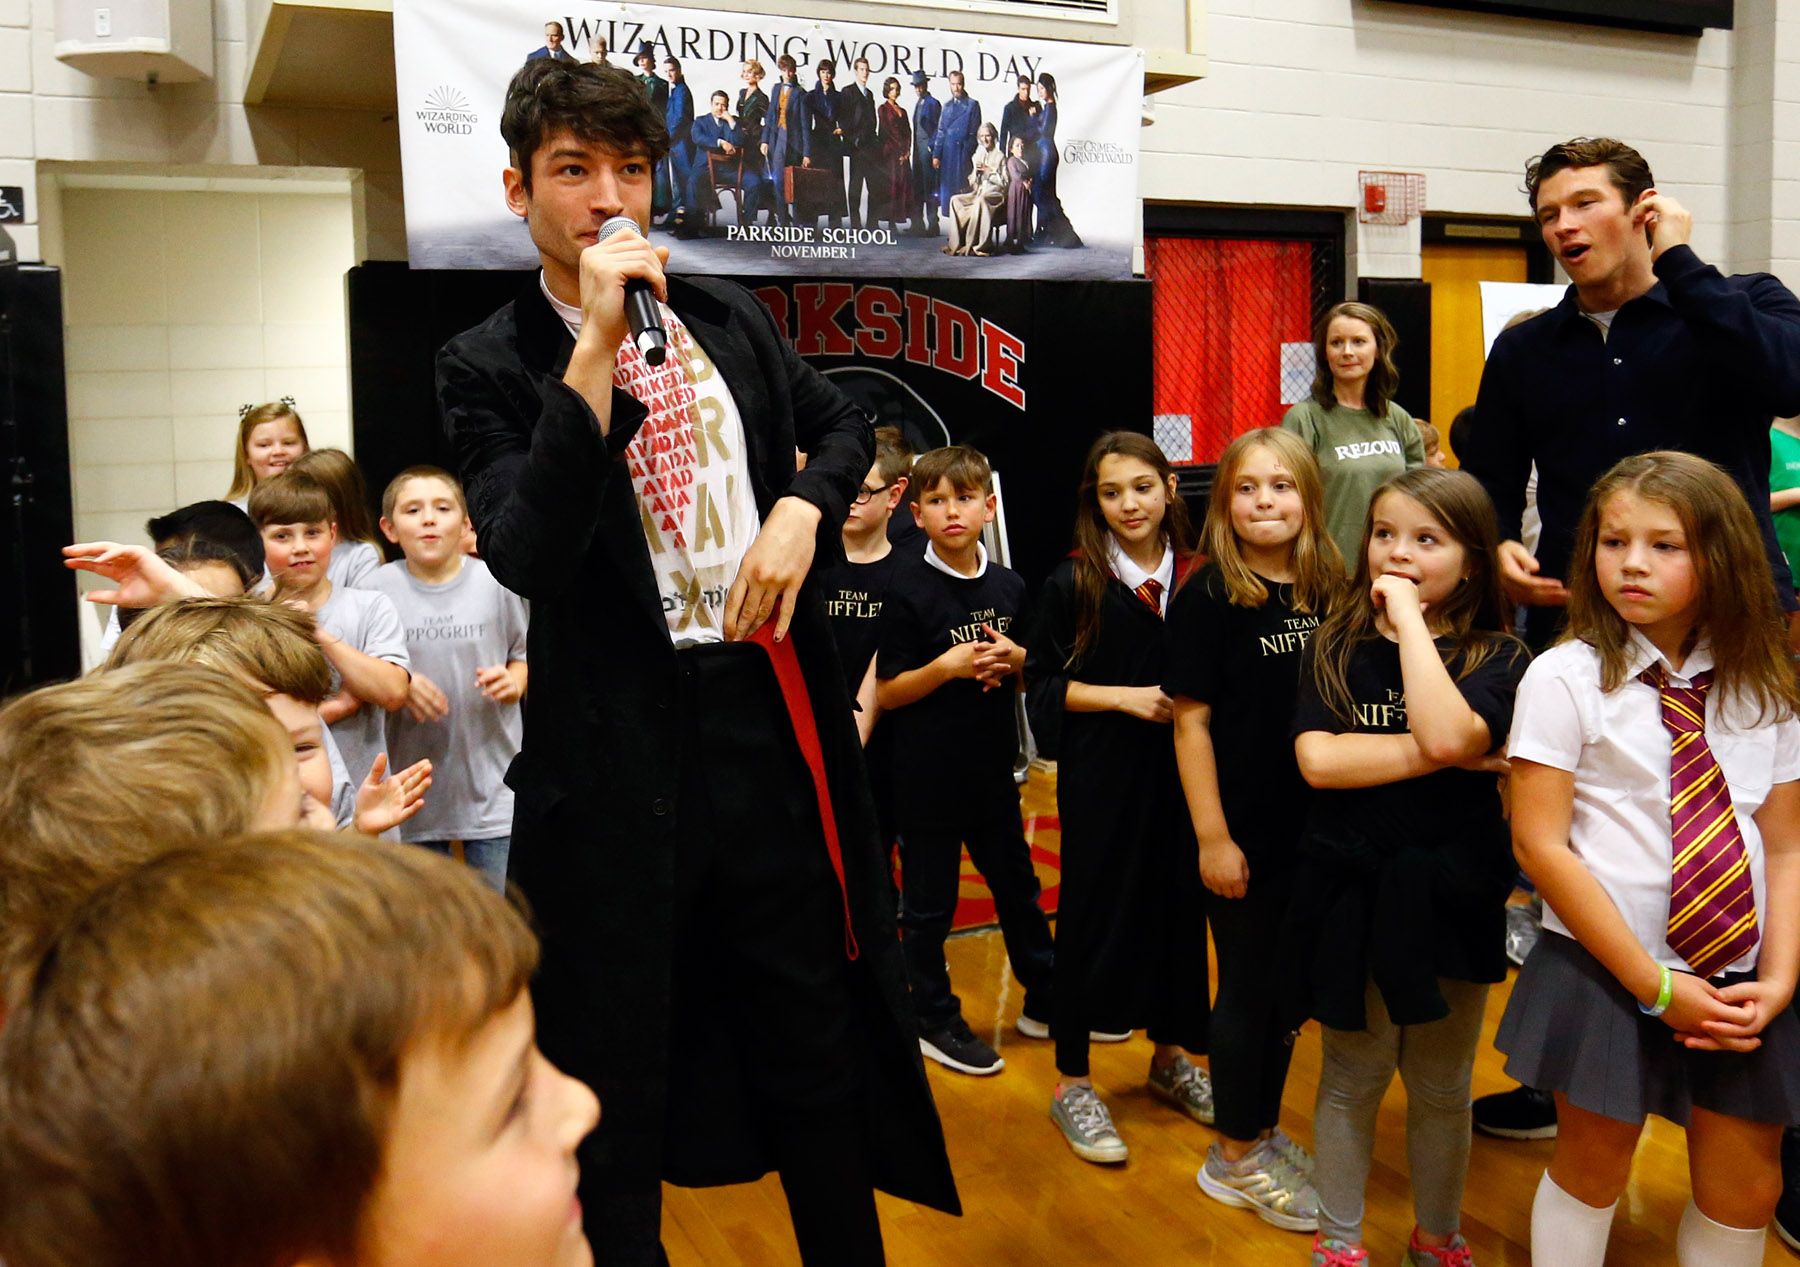 """Ezra Miller from """"Fantastic Beasts: The Crimes of Grindelwald"""" celebrates Wizarding World Day at Parkside Middle School in Baileyton, AL.  (Photo by Butch Dill/Getty Images)"""